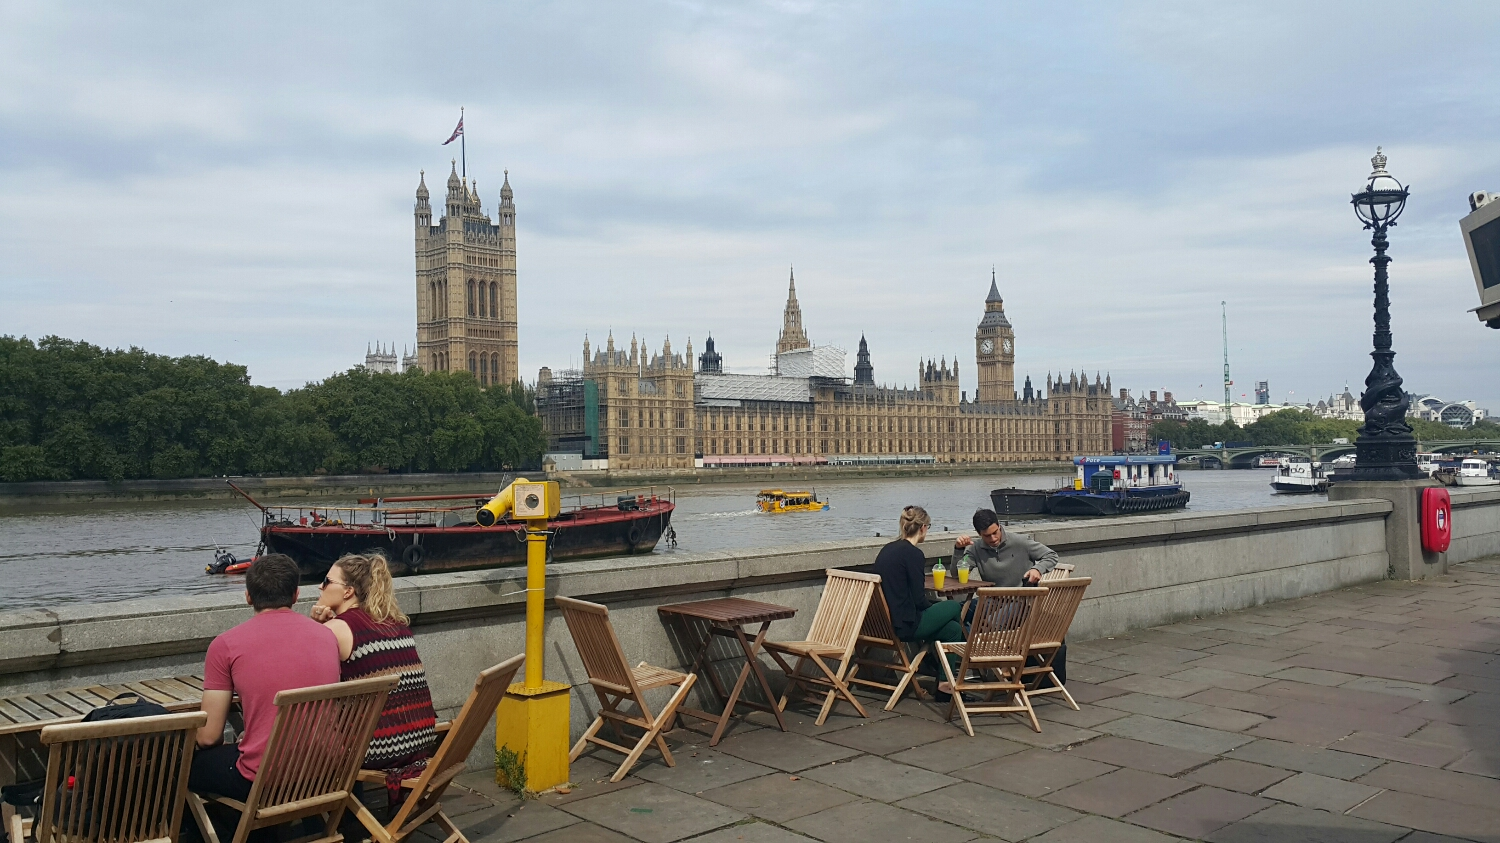 My first stop for a hot chocolate and a view over the Thames to the houses of Parliament and big Ben